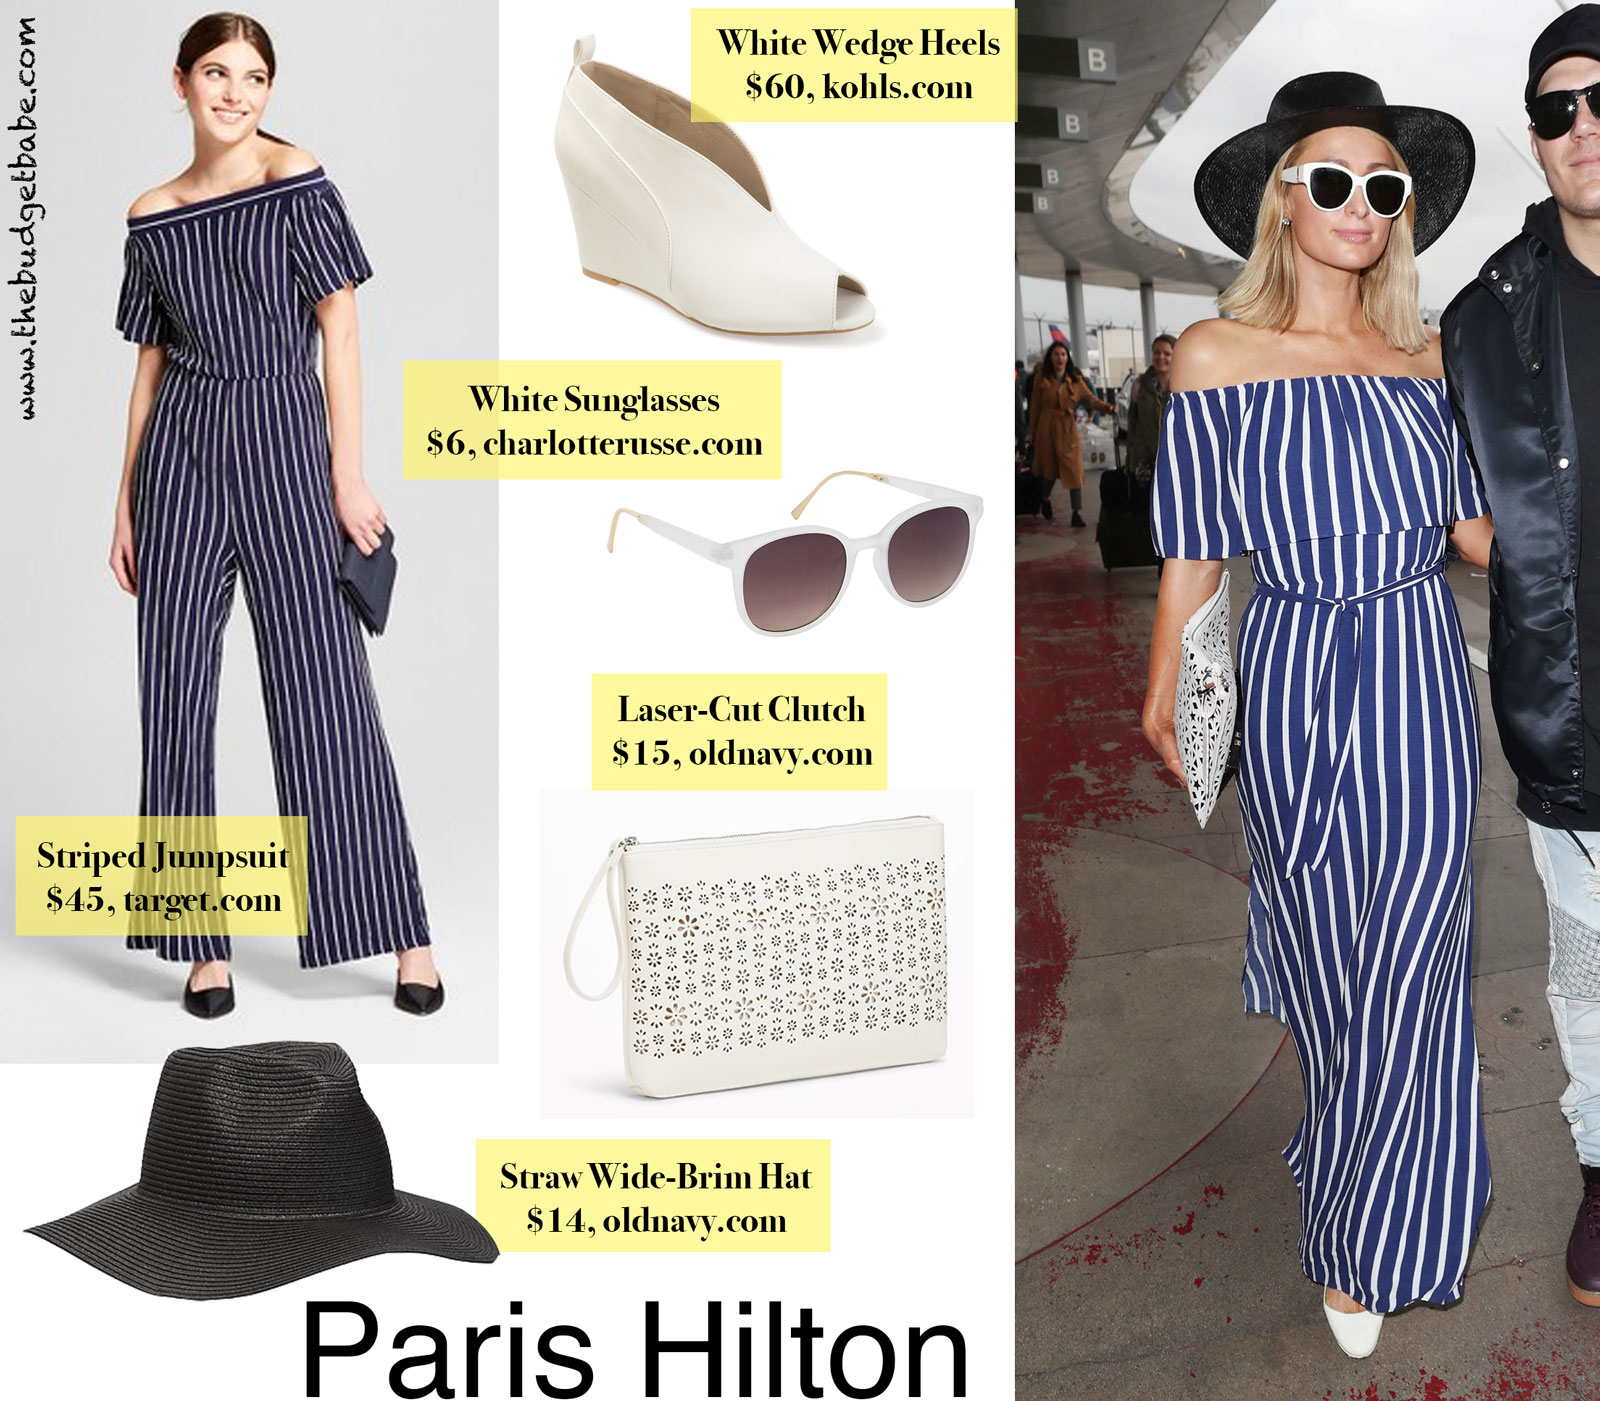 649f6f73ad5 Paris Hilton Striped Jumpsuit Look for Less